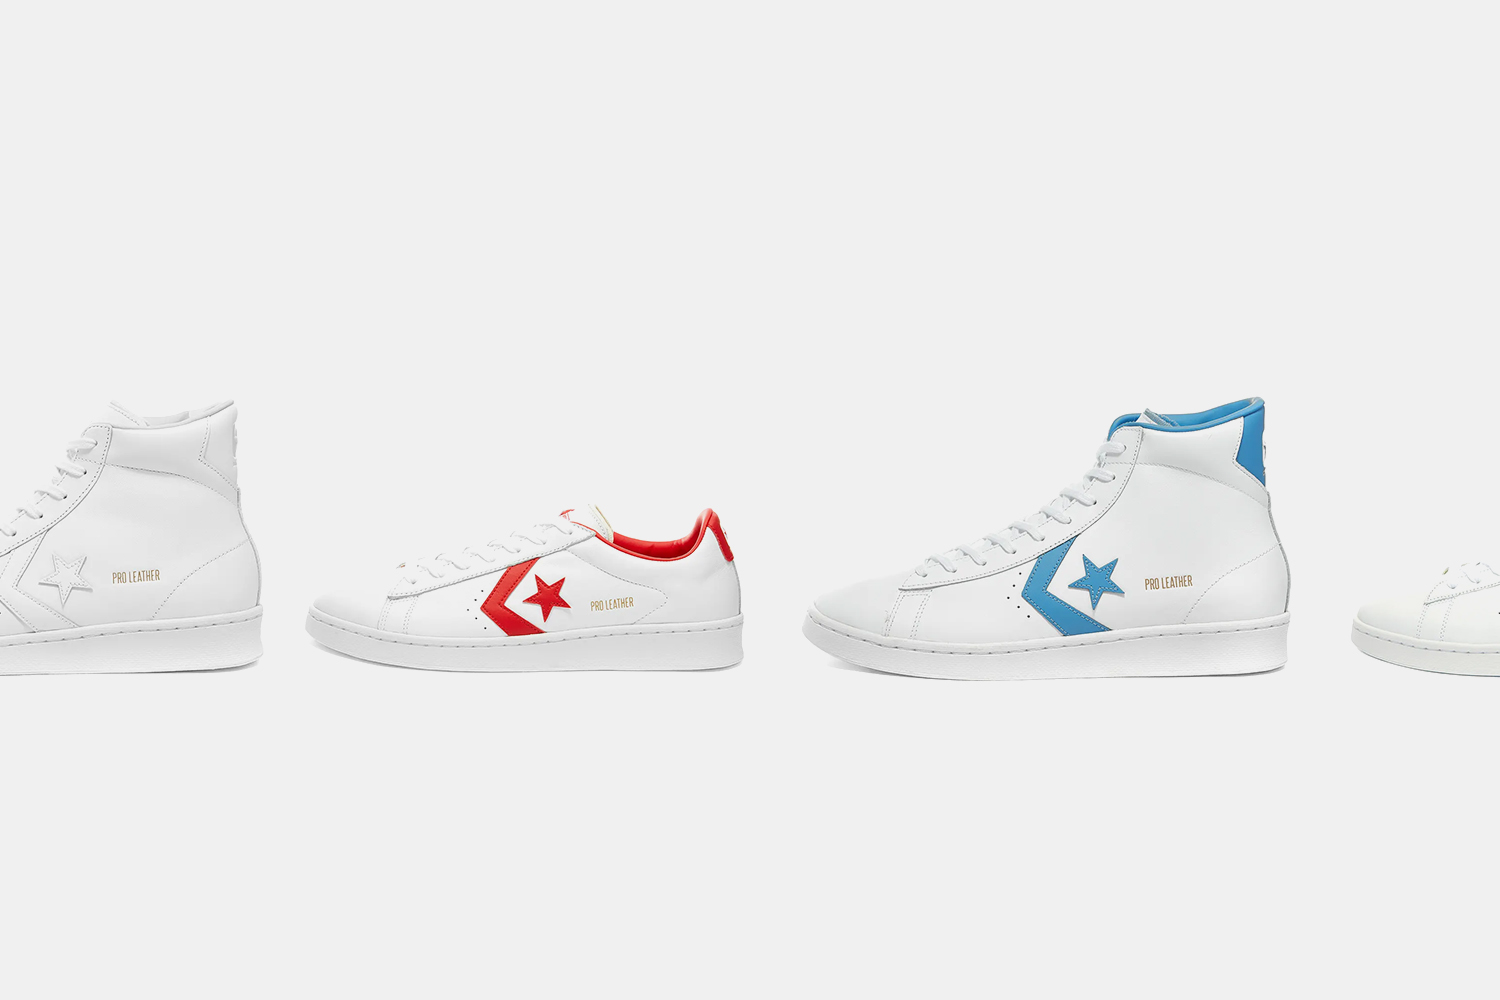 Deal: Converse's Pro Leather Sneakers Are 30% Off at End Clothing